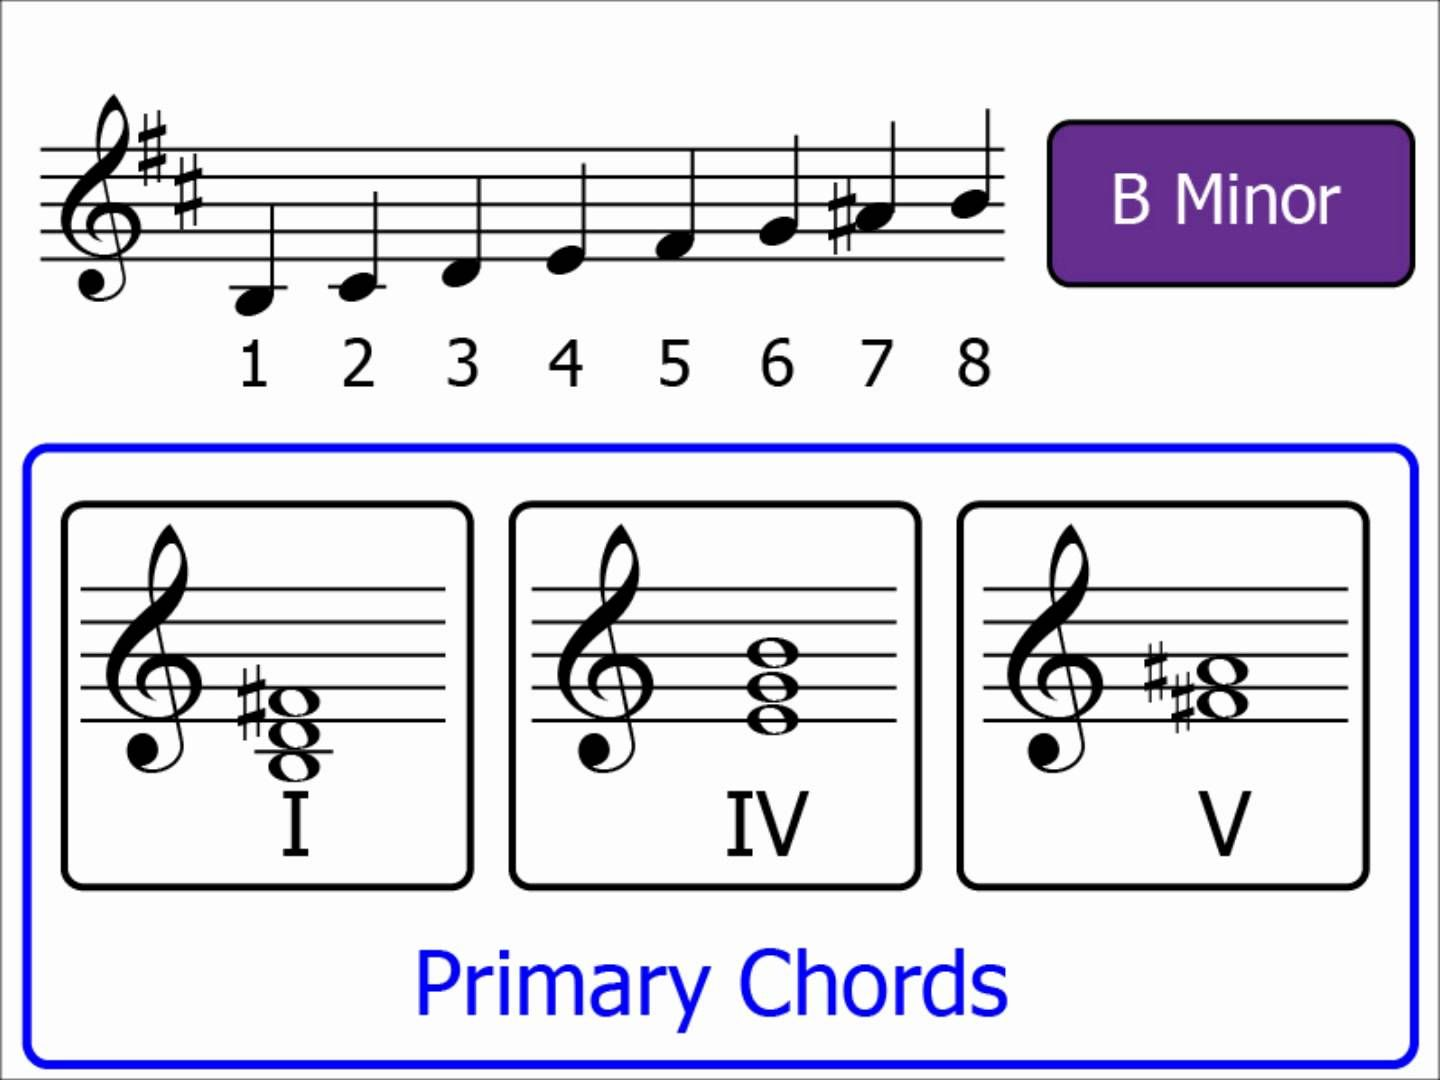 Chords Part 4: Primary Chords (Minor Keys) - YouTube